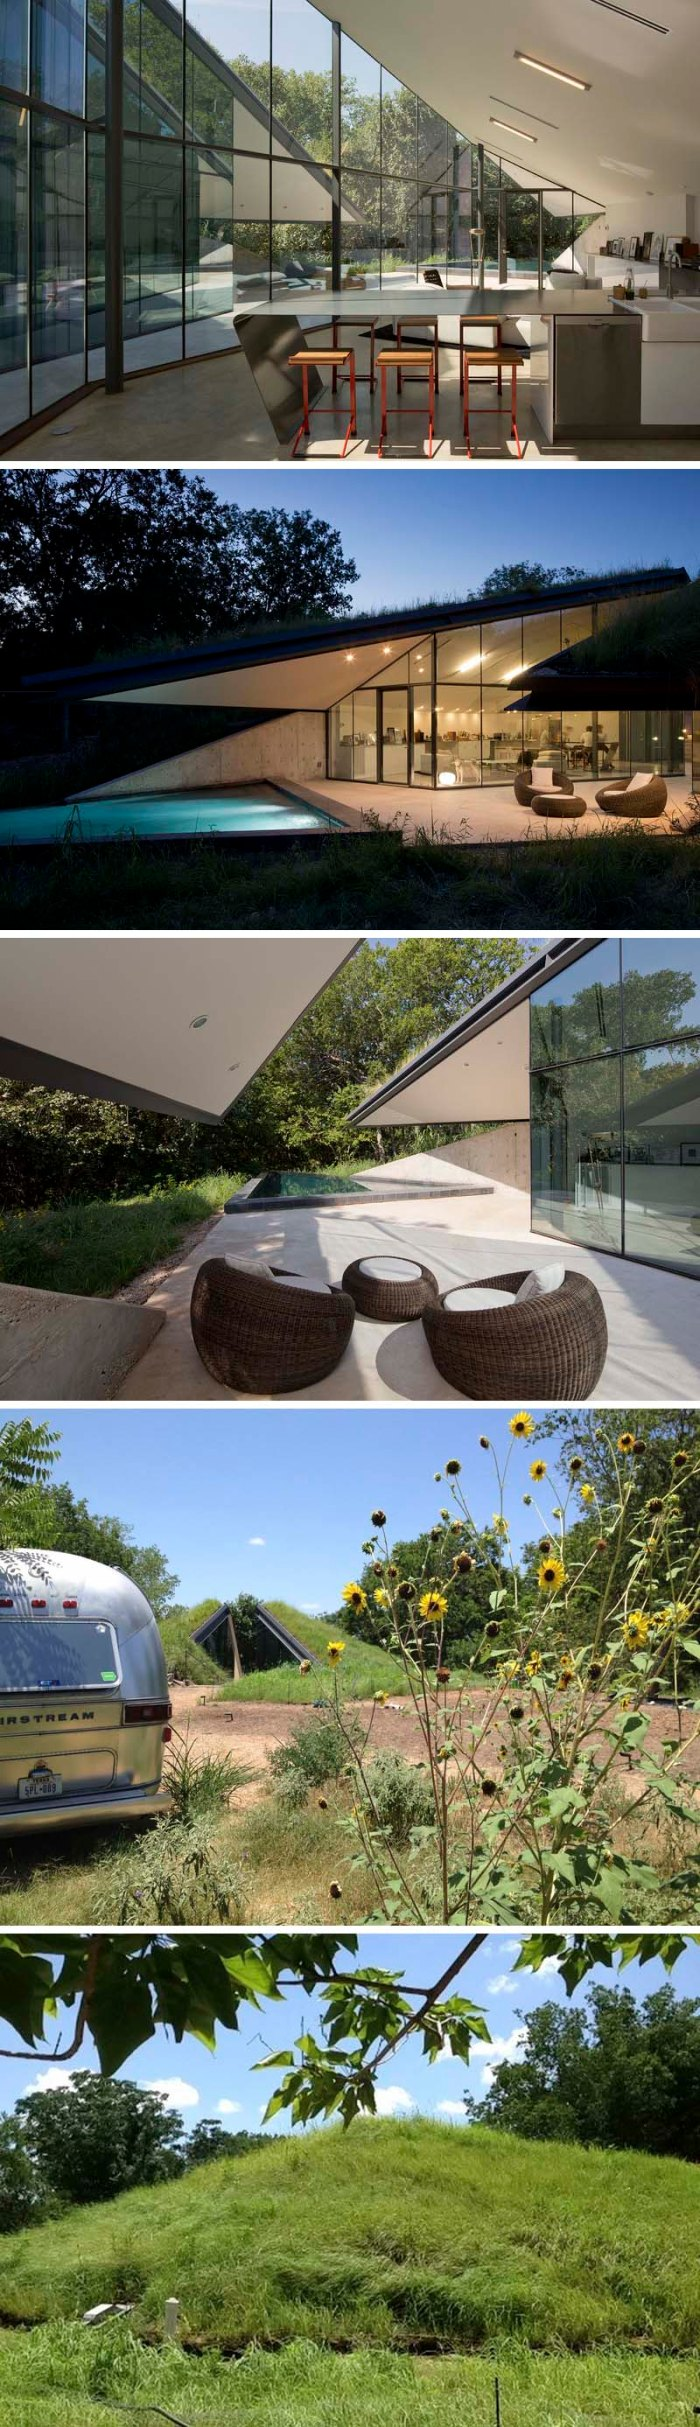 Edgeland House, Austin Texas, Designed by Bercy Chen Studio, based on Pit House style architecture, hidden in ground, cool architecture